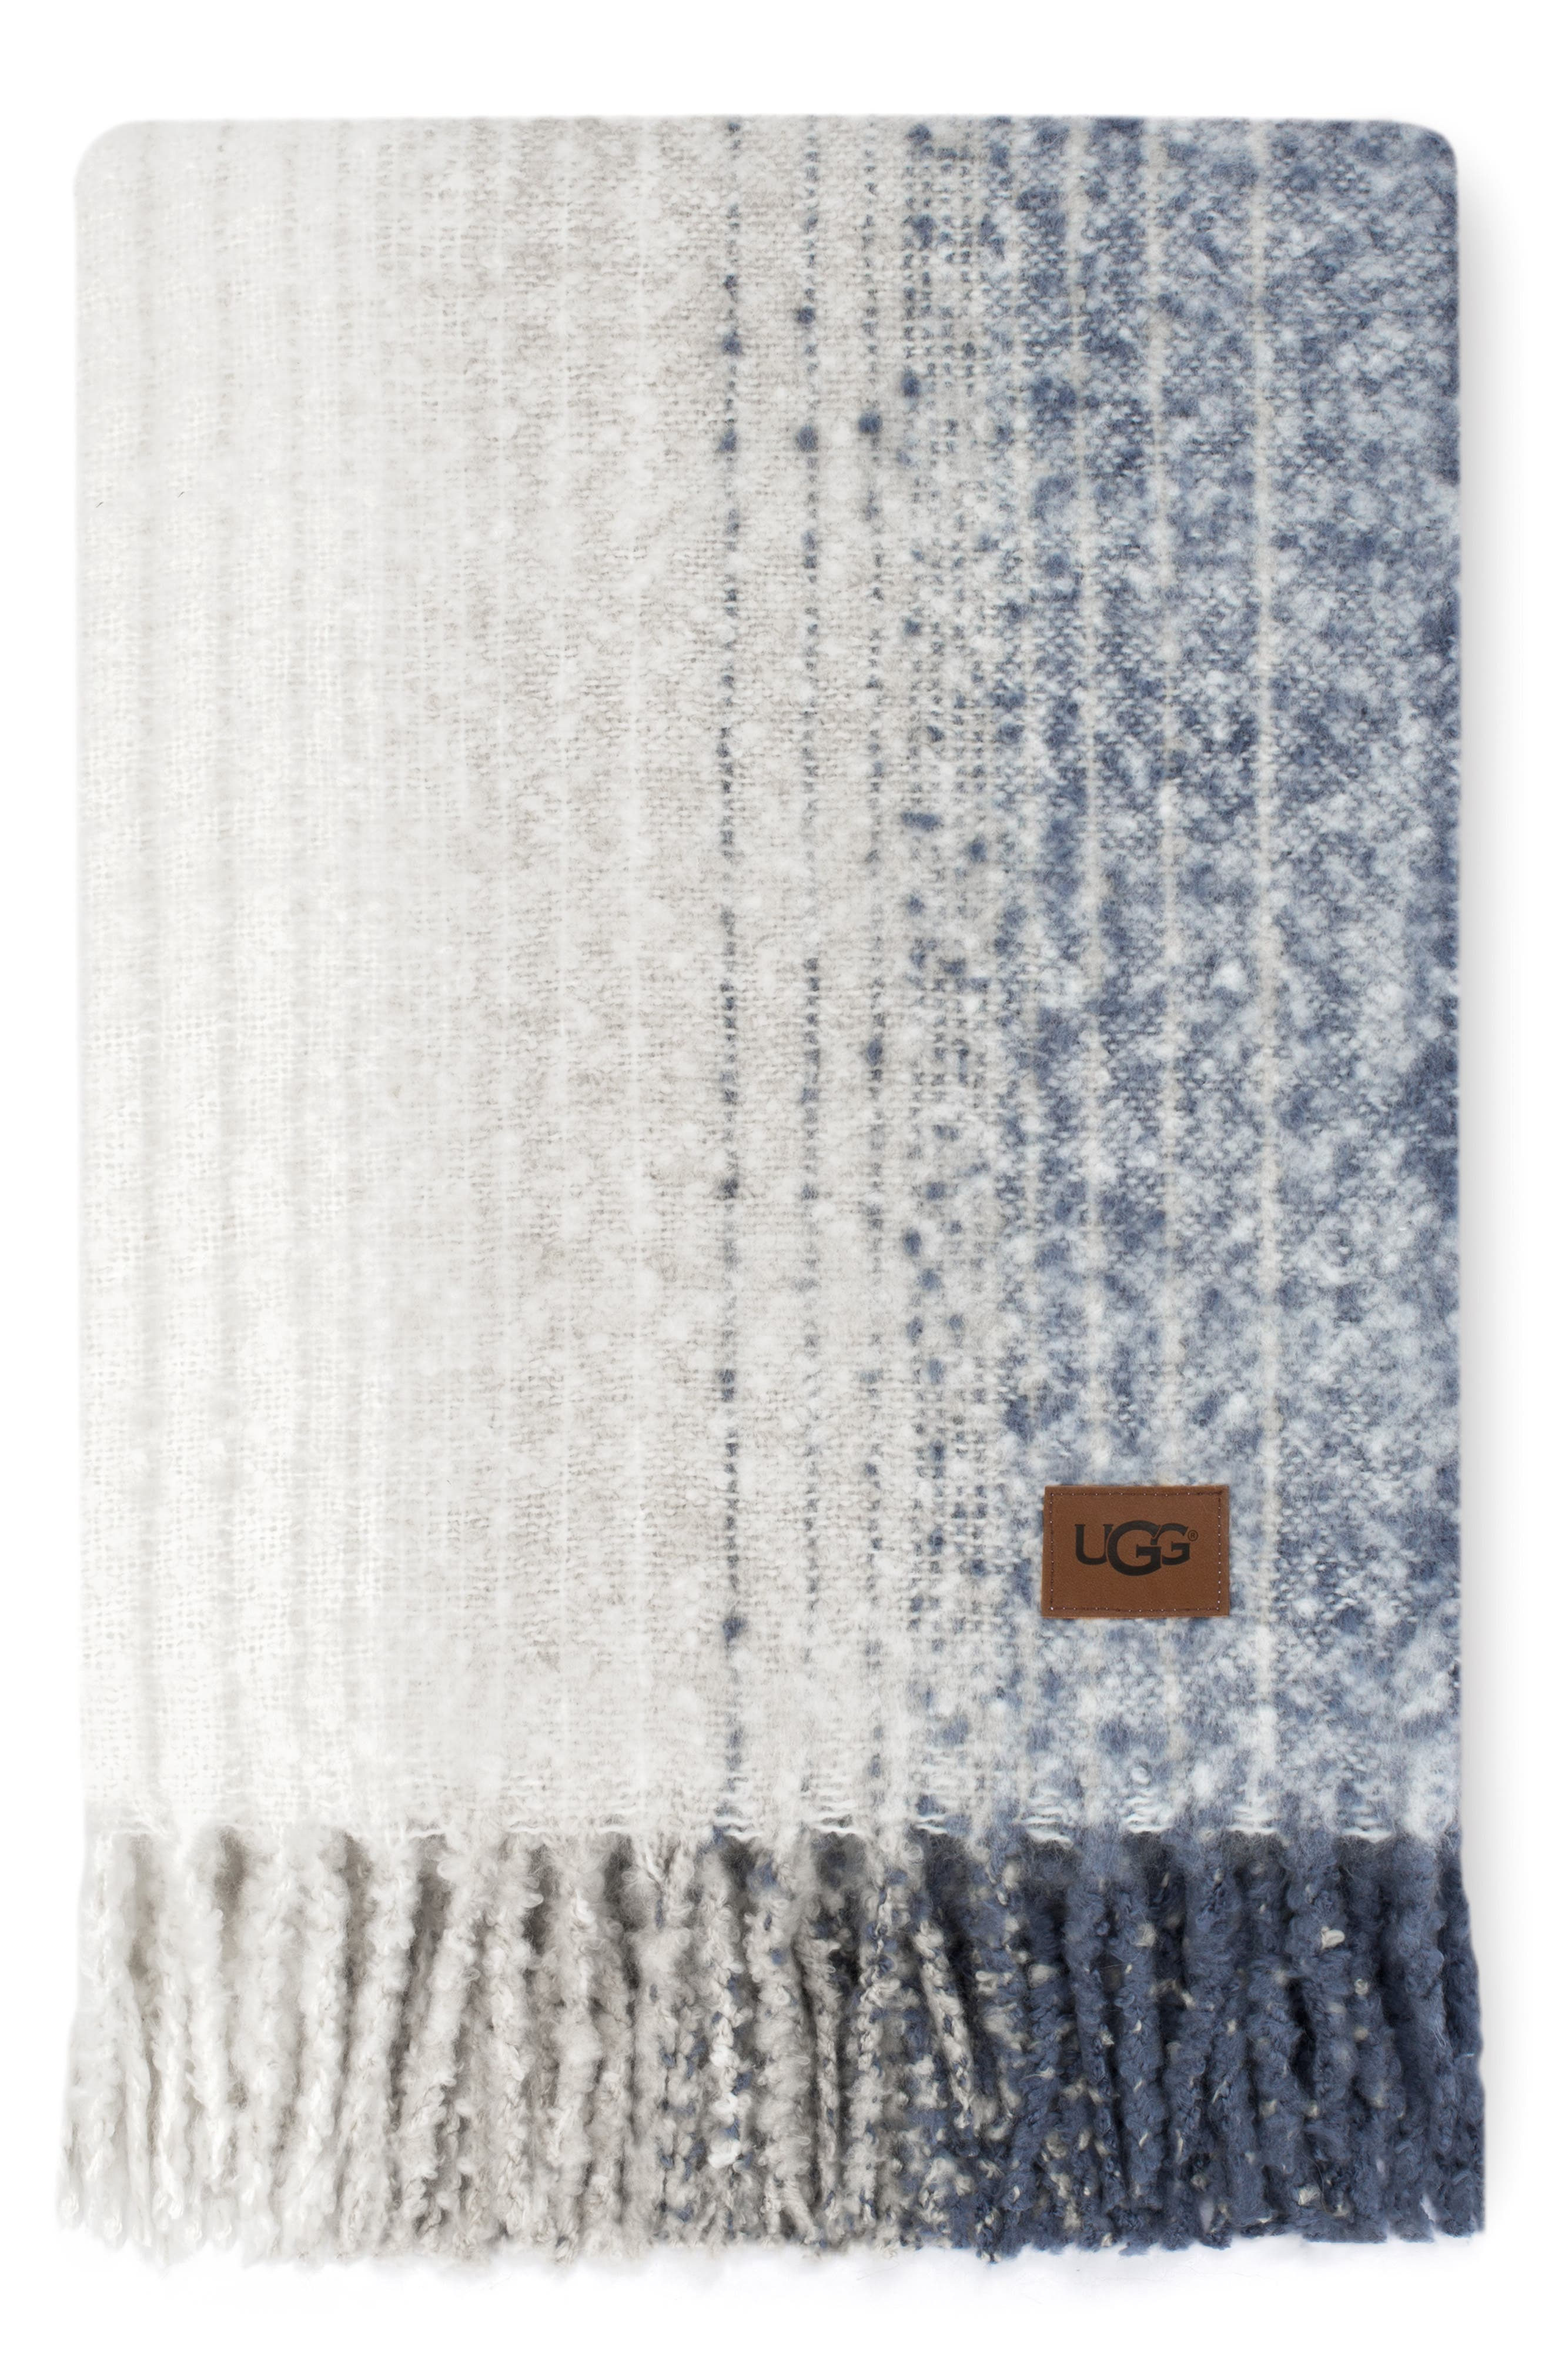 Moonlight Throw Blanket,                             Main thumbnail 1, color,                             STONE/DENIM